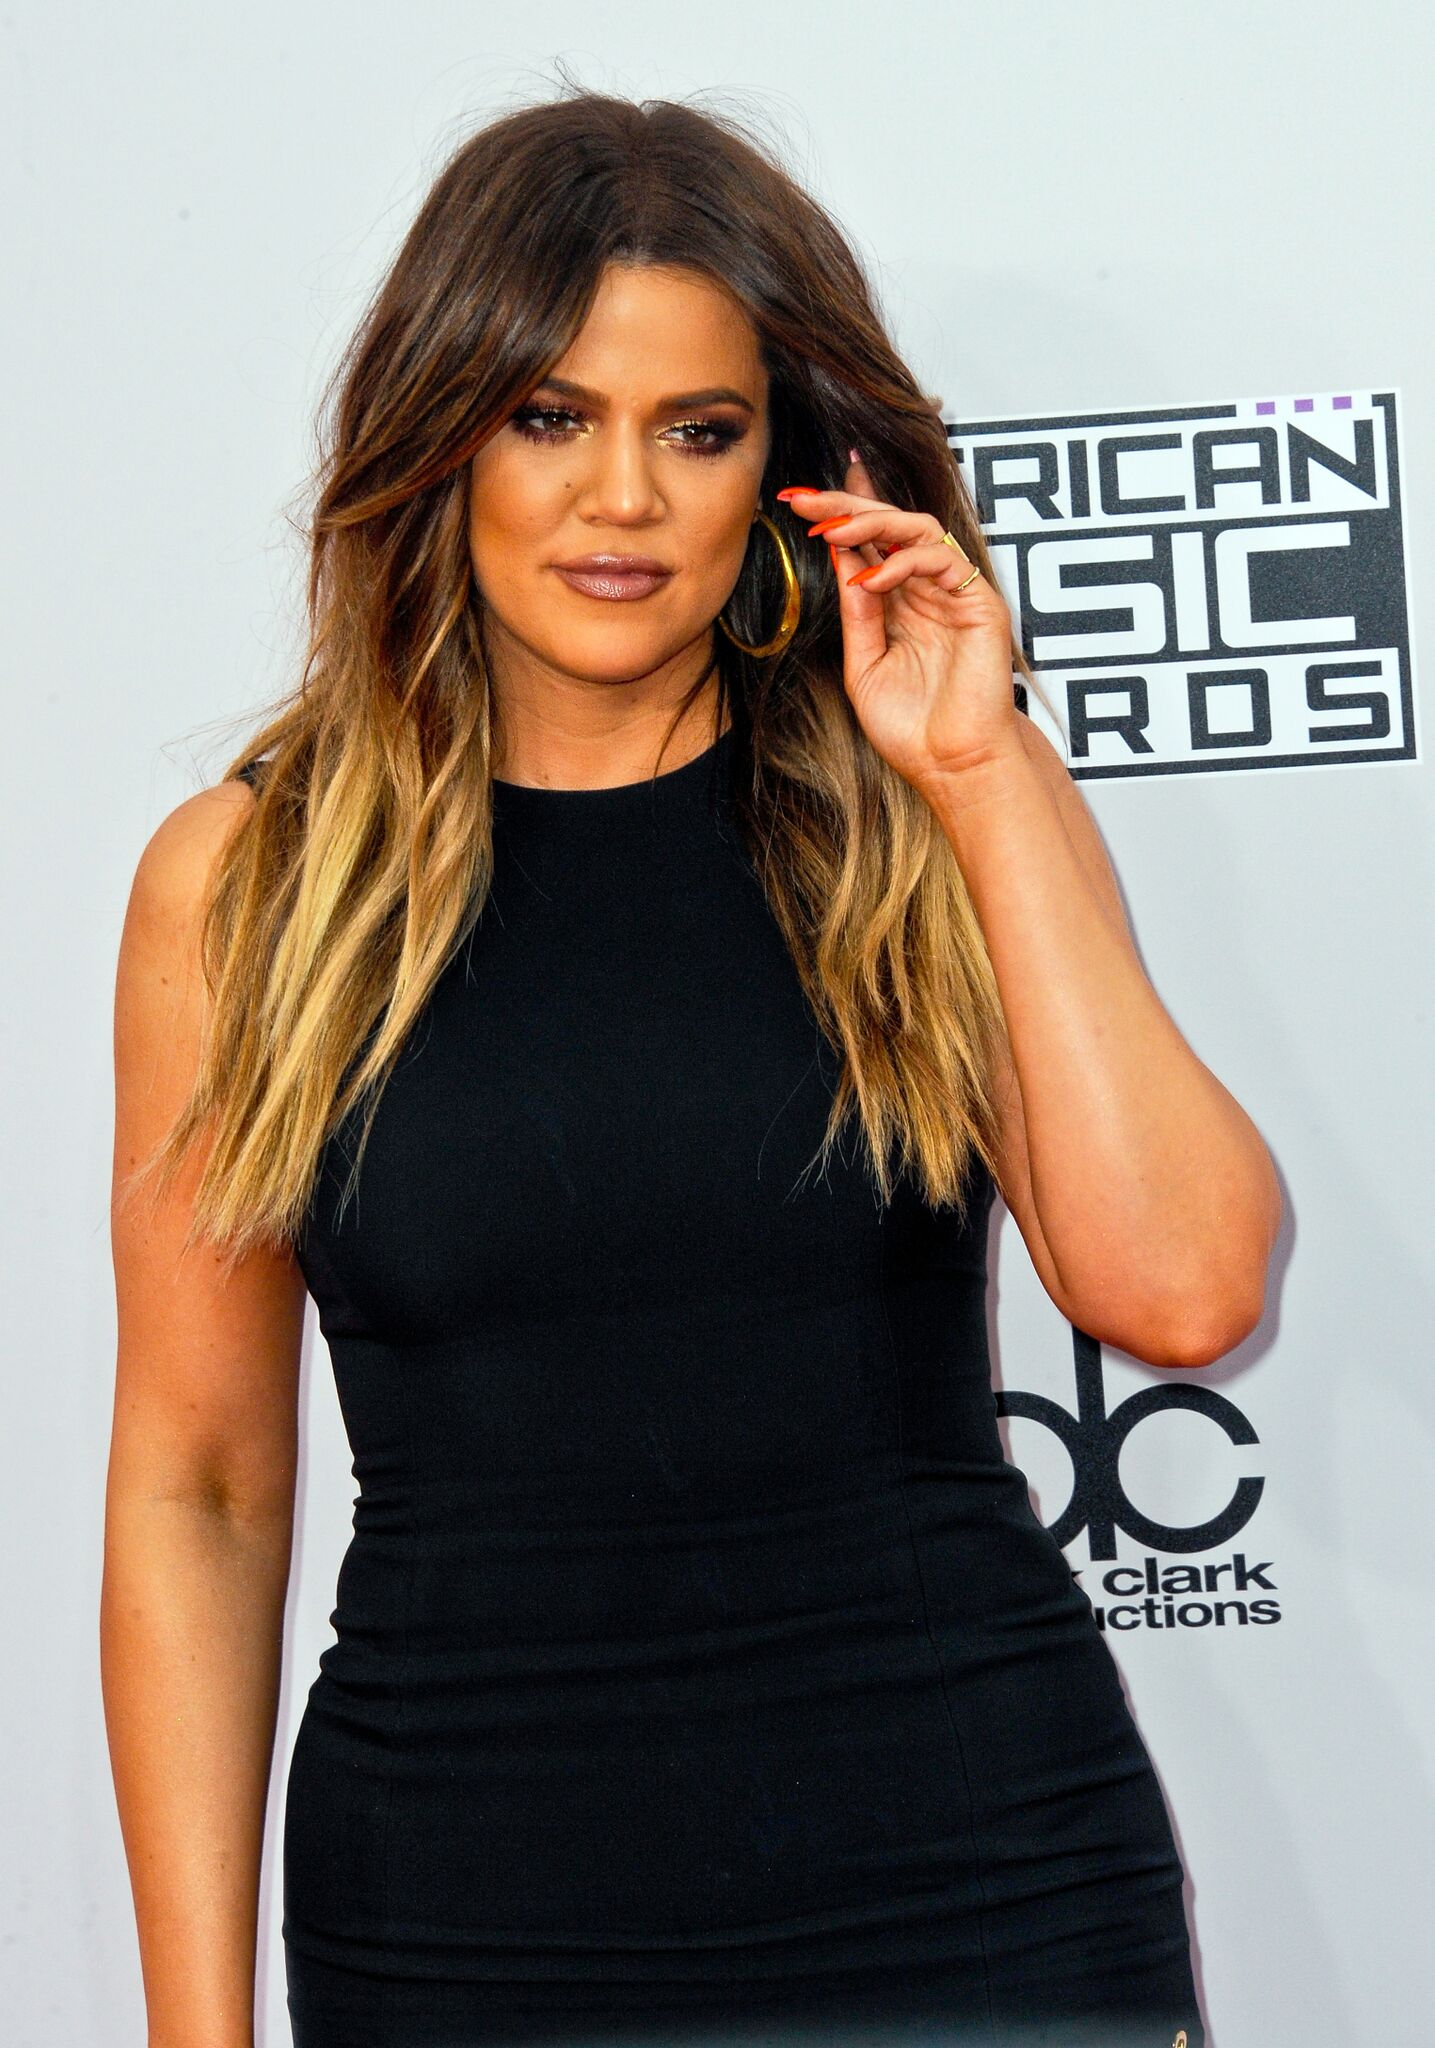 Khloe Kardashian arrives for the 42nd Annual American Music Awards held at Nokia Theatre L.A. Live | Getty Images